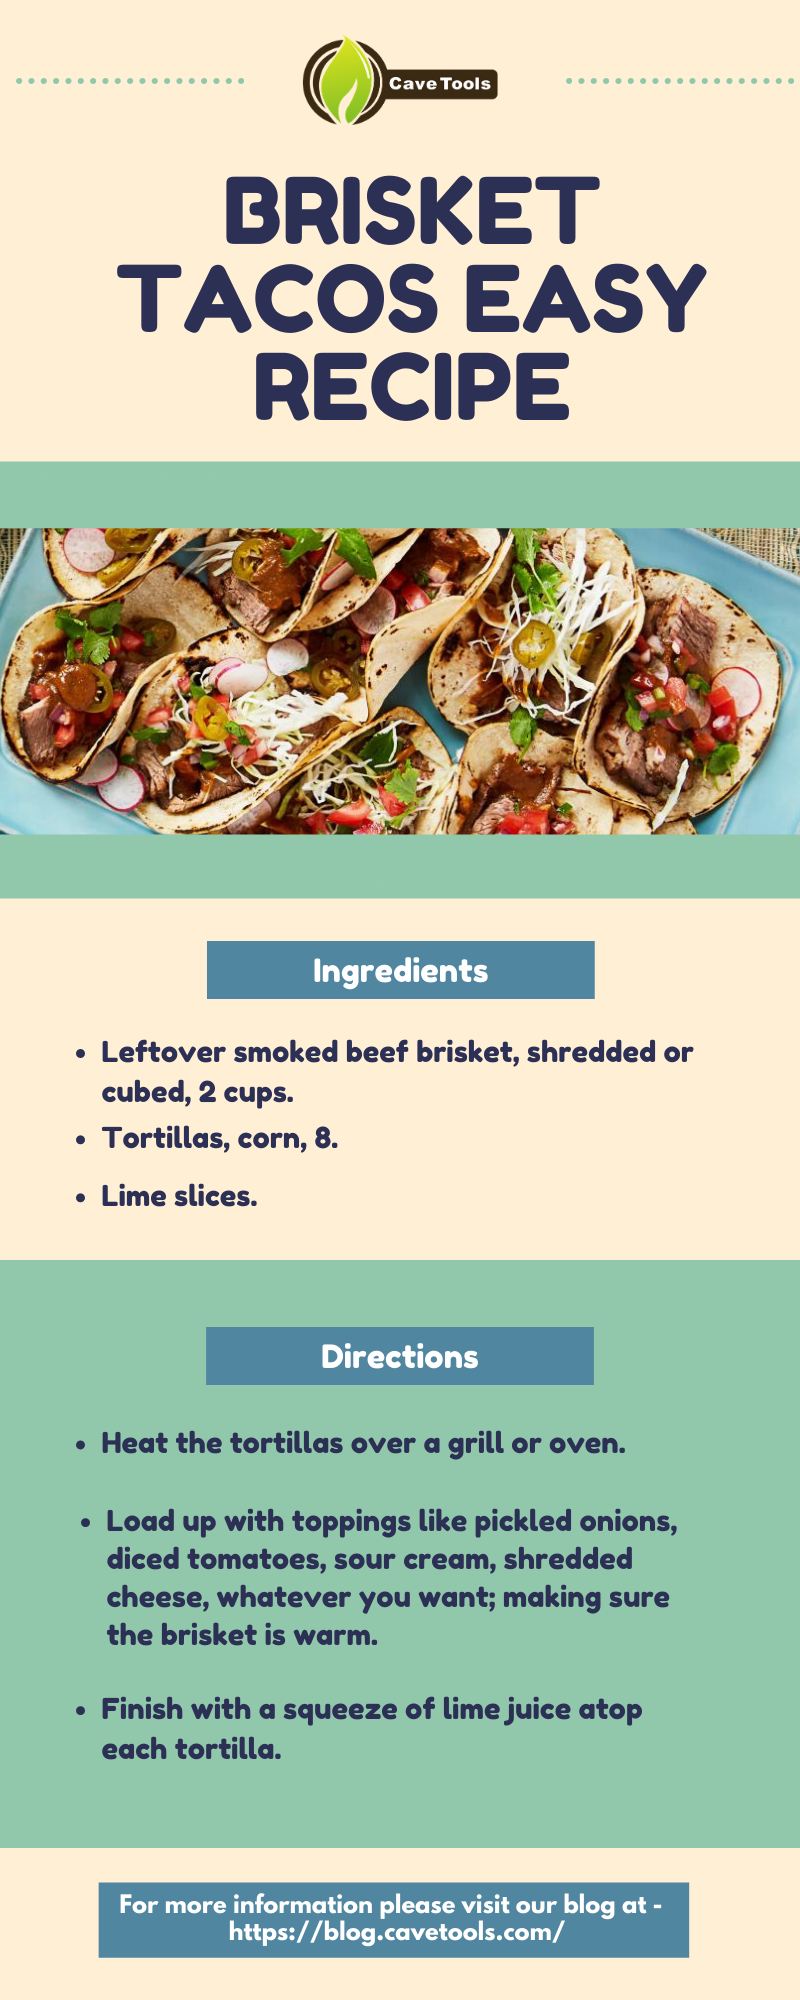 Brisket Tacos Easy Recipe